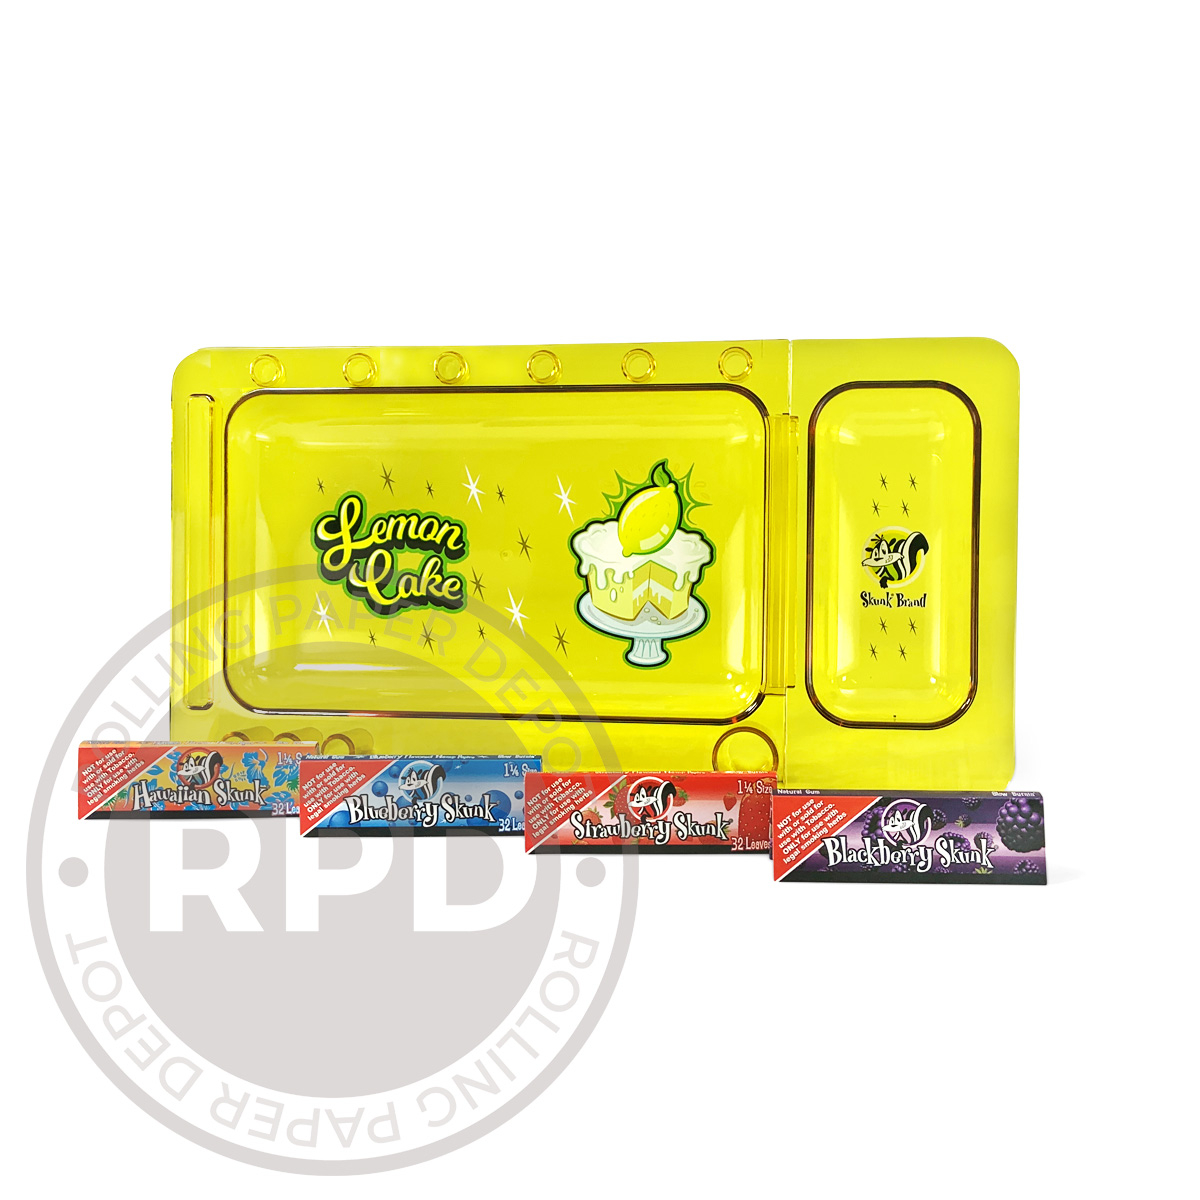 Fruity Skunk Brand Bundle Lemon Cake RPD